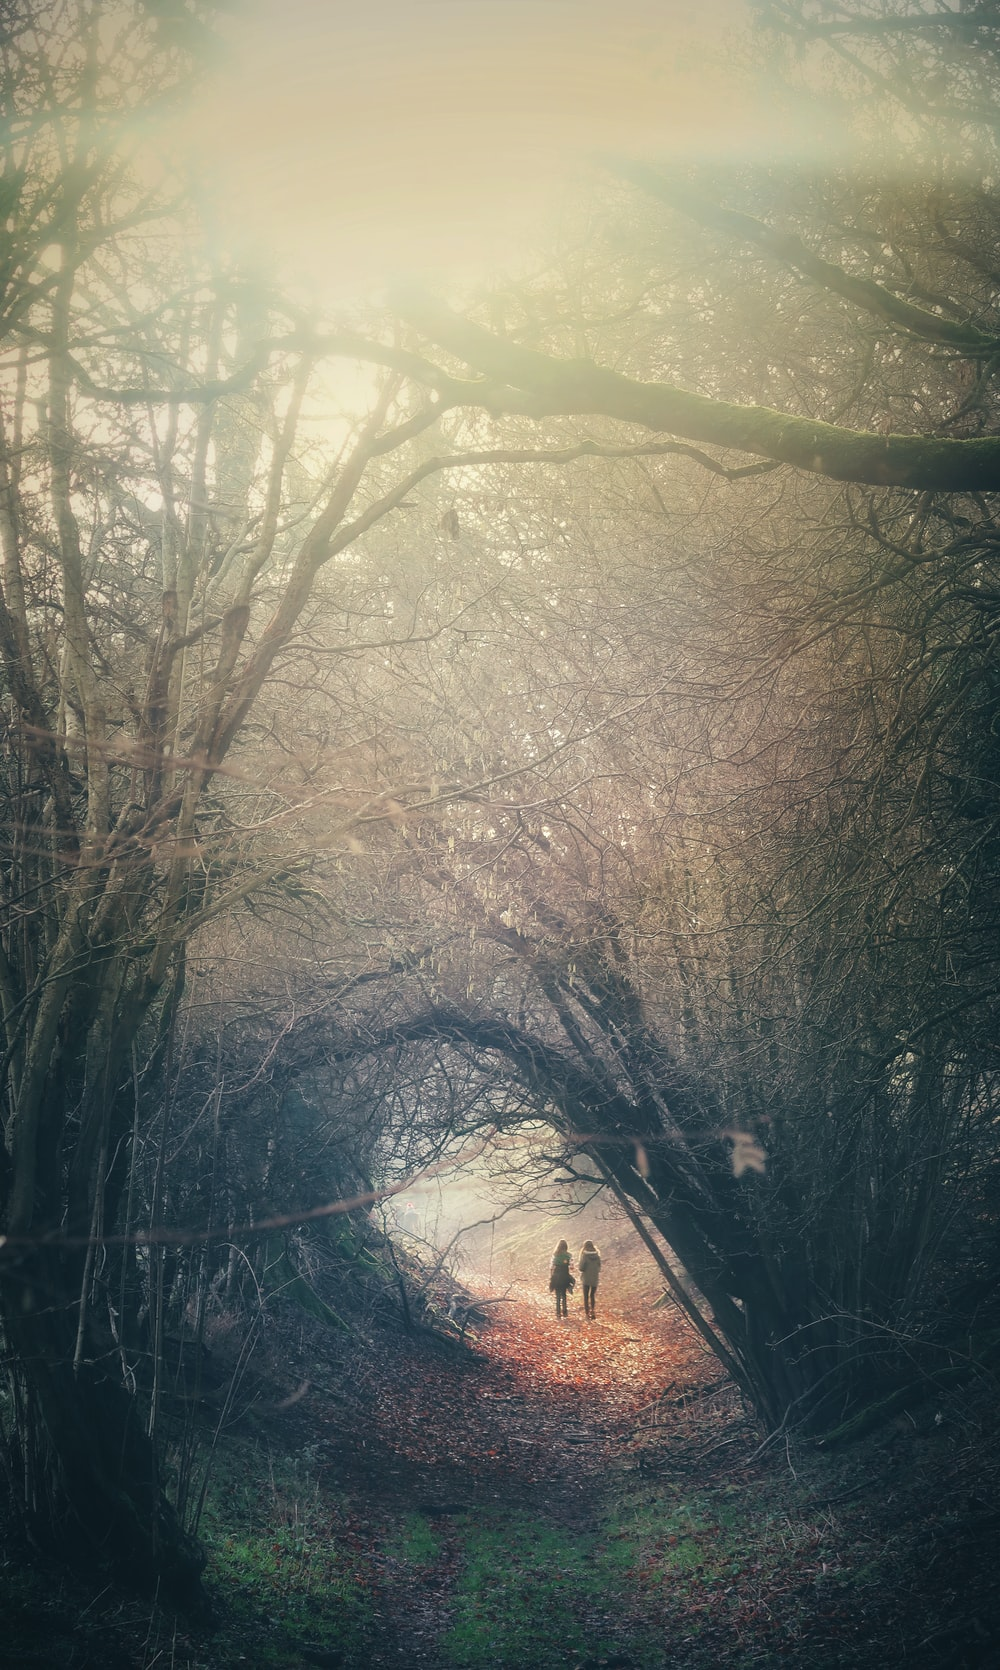 two person walking in between trees